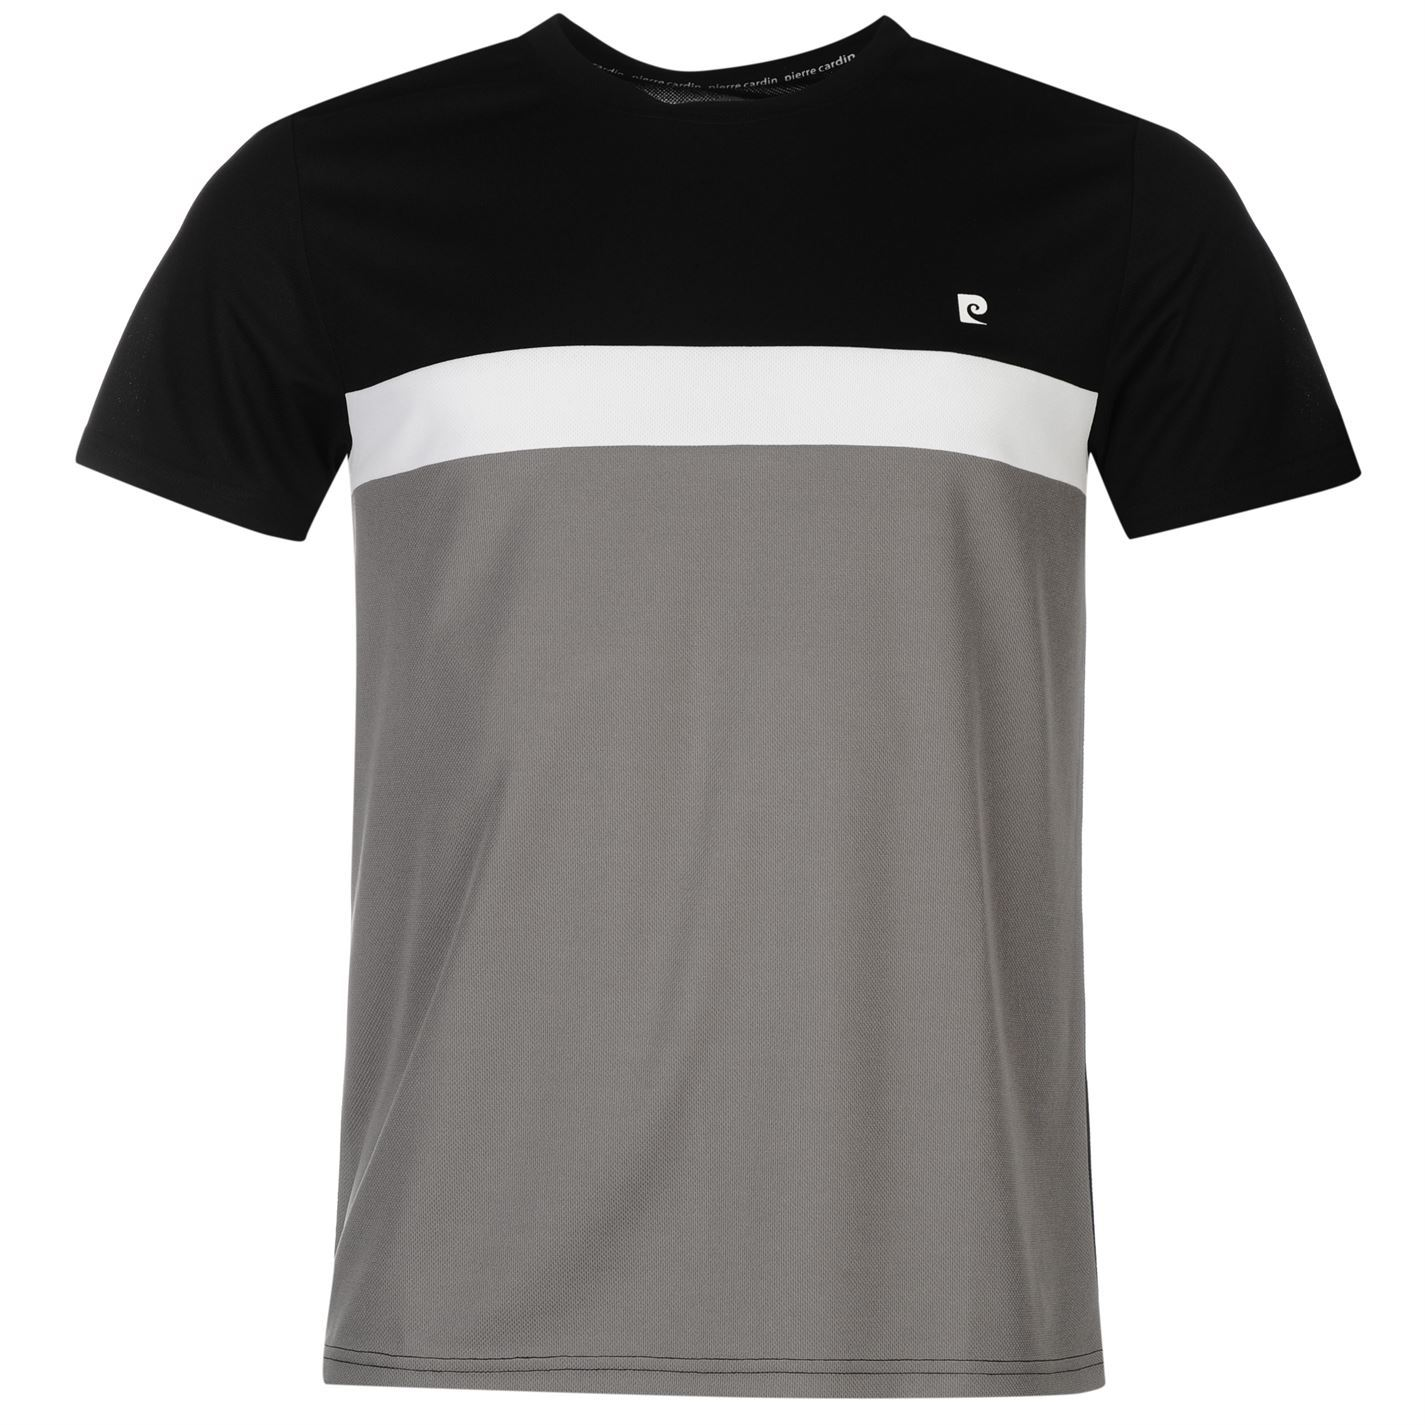 pierre cardin panel t shirt mens black grey top tee shirt. Black Bedroom Furniture Sets. Home Design Ideas